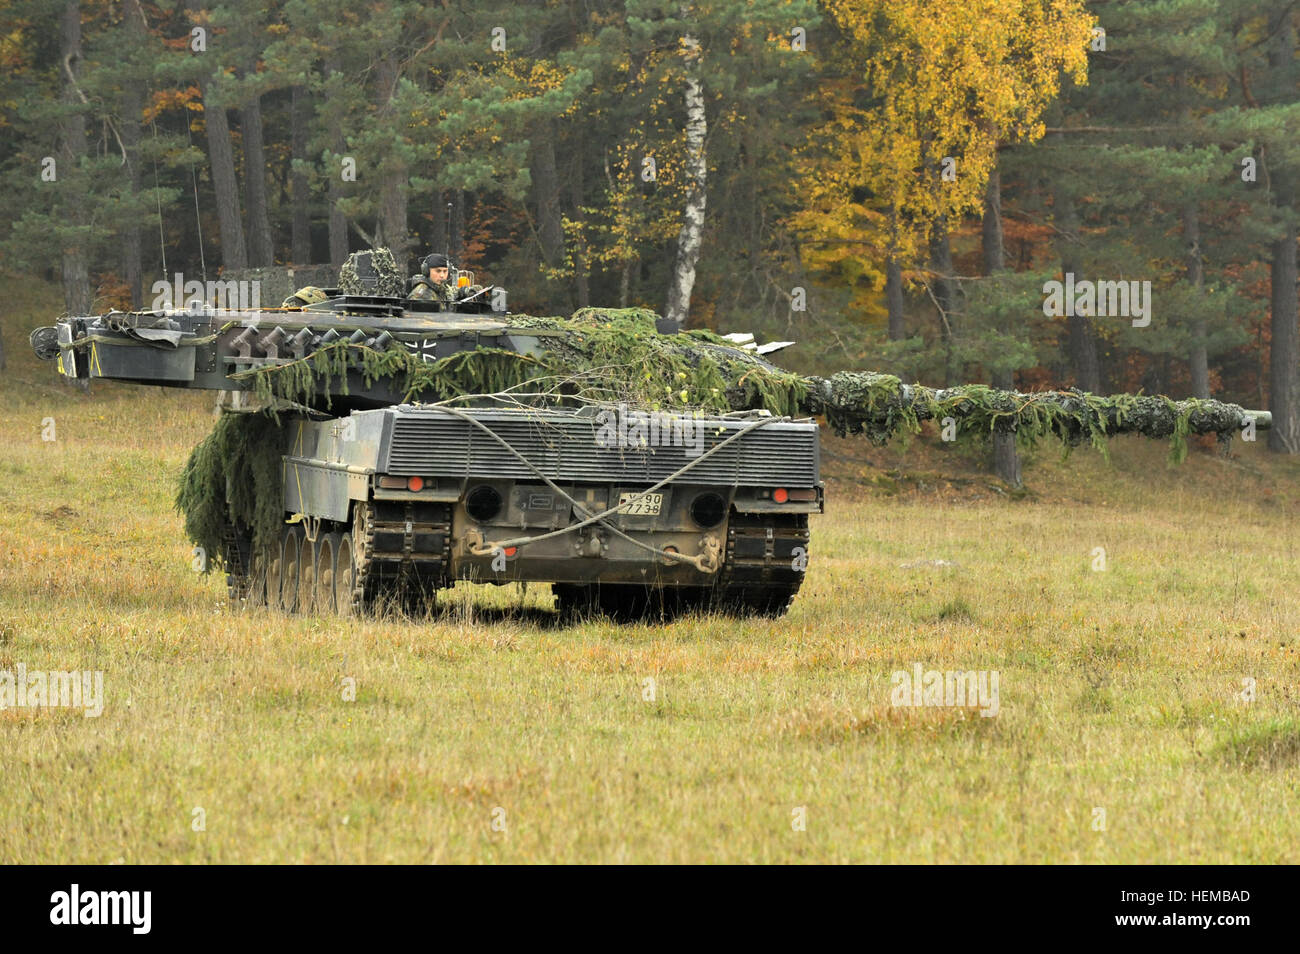 A German Army Leopard II tank assigned to the 104th Panzer Battalion, scans the battlefield at the Joint Multinational - Stock Image